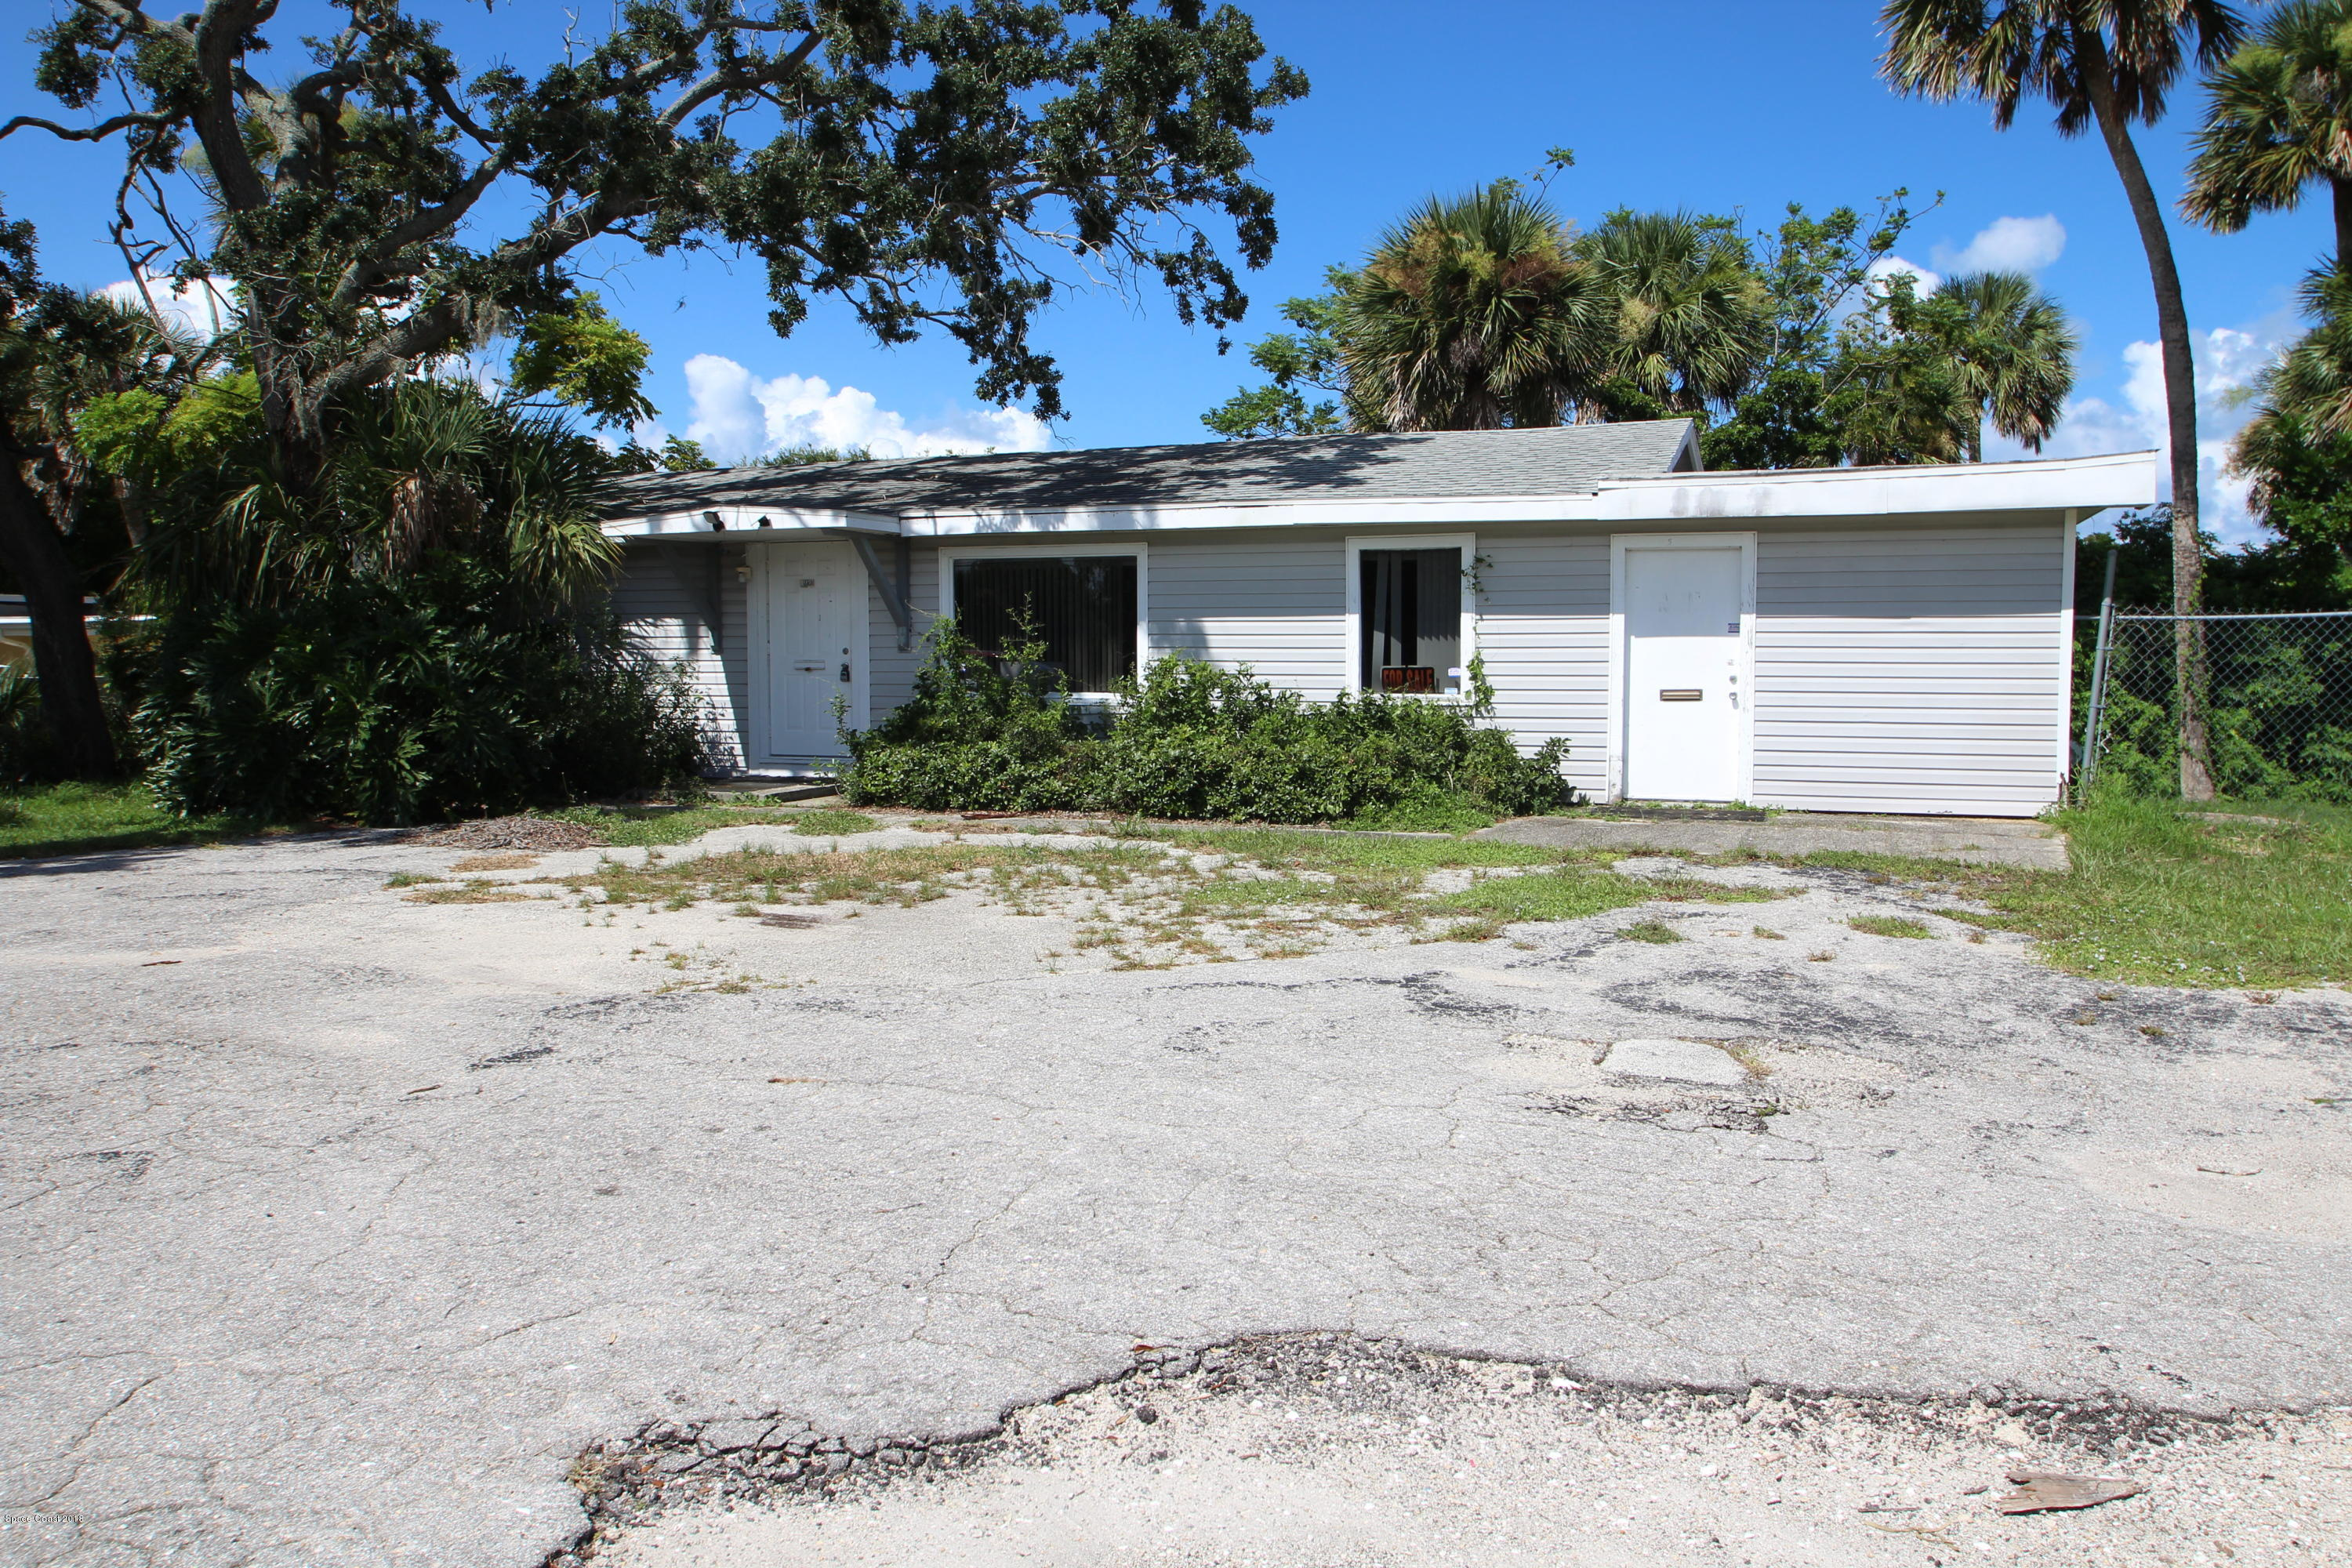 Commercial for Sale at 3925 Dixie Highway Palm Bay, Florida 32905 United States